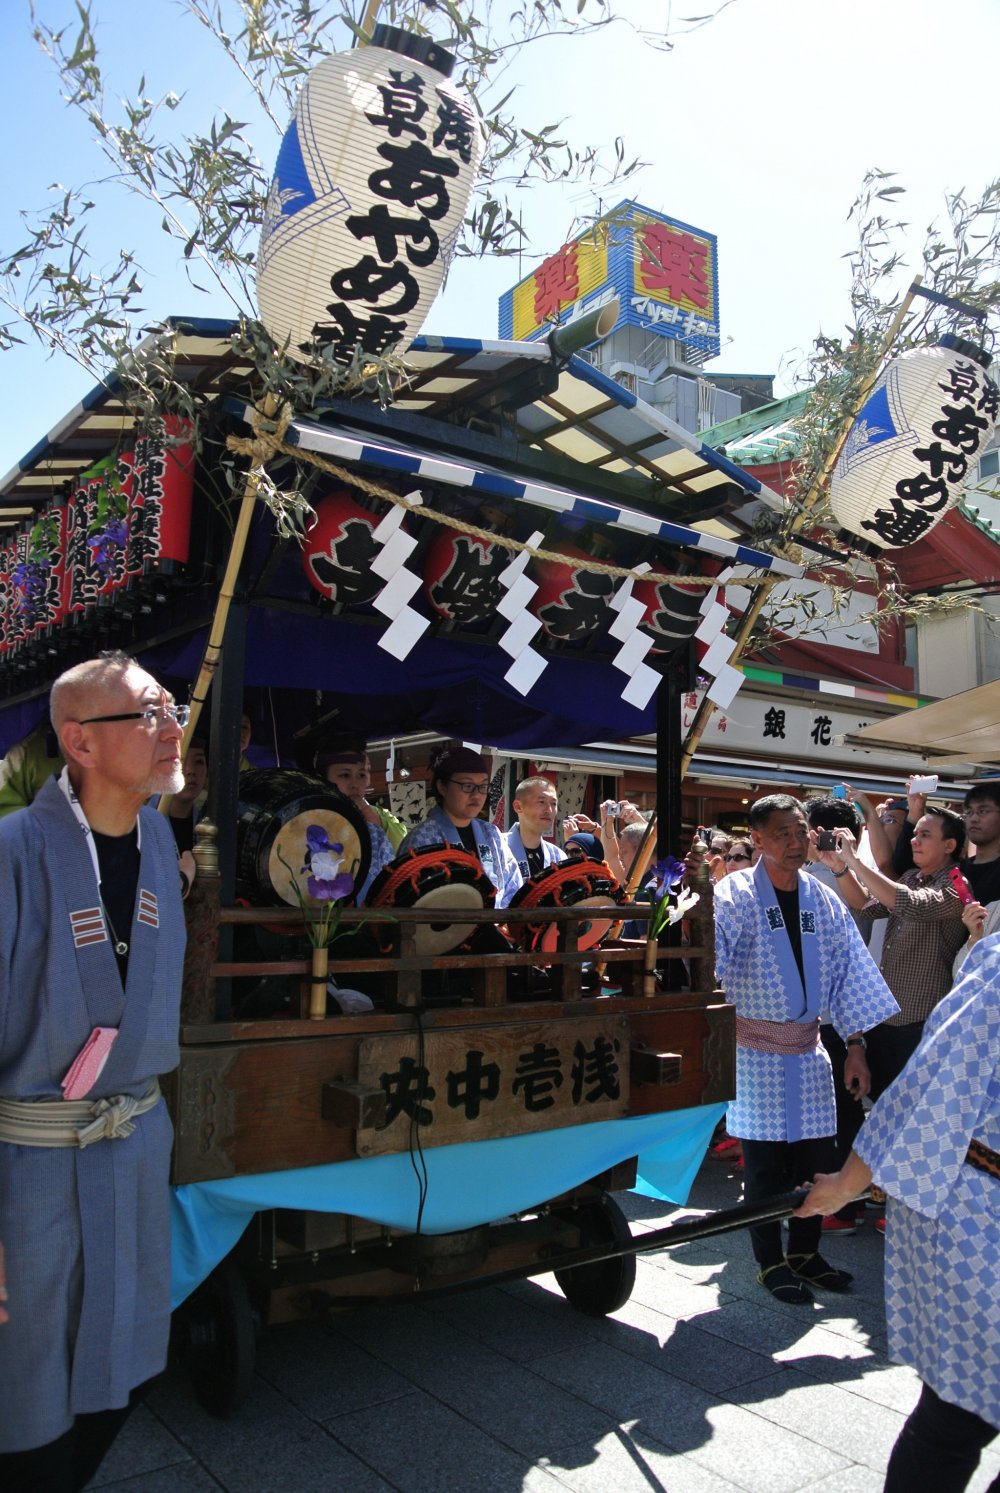 The start of the procession is a float of Taiko drummers